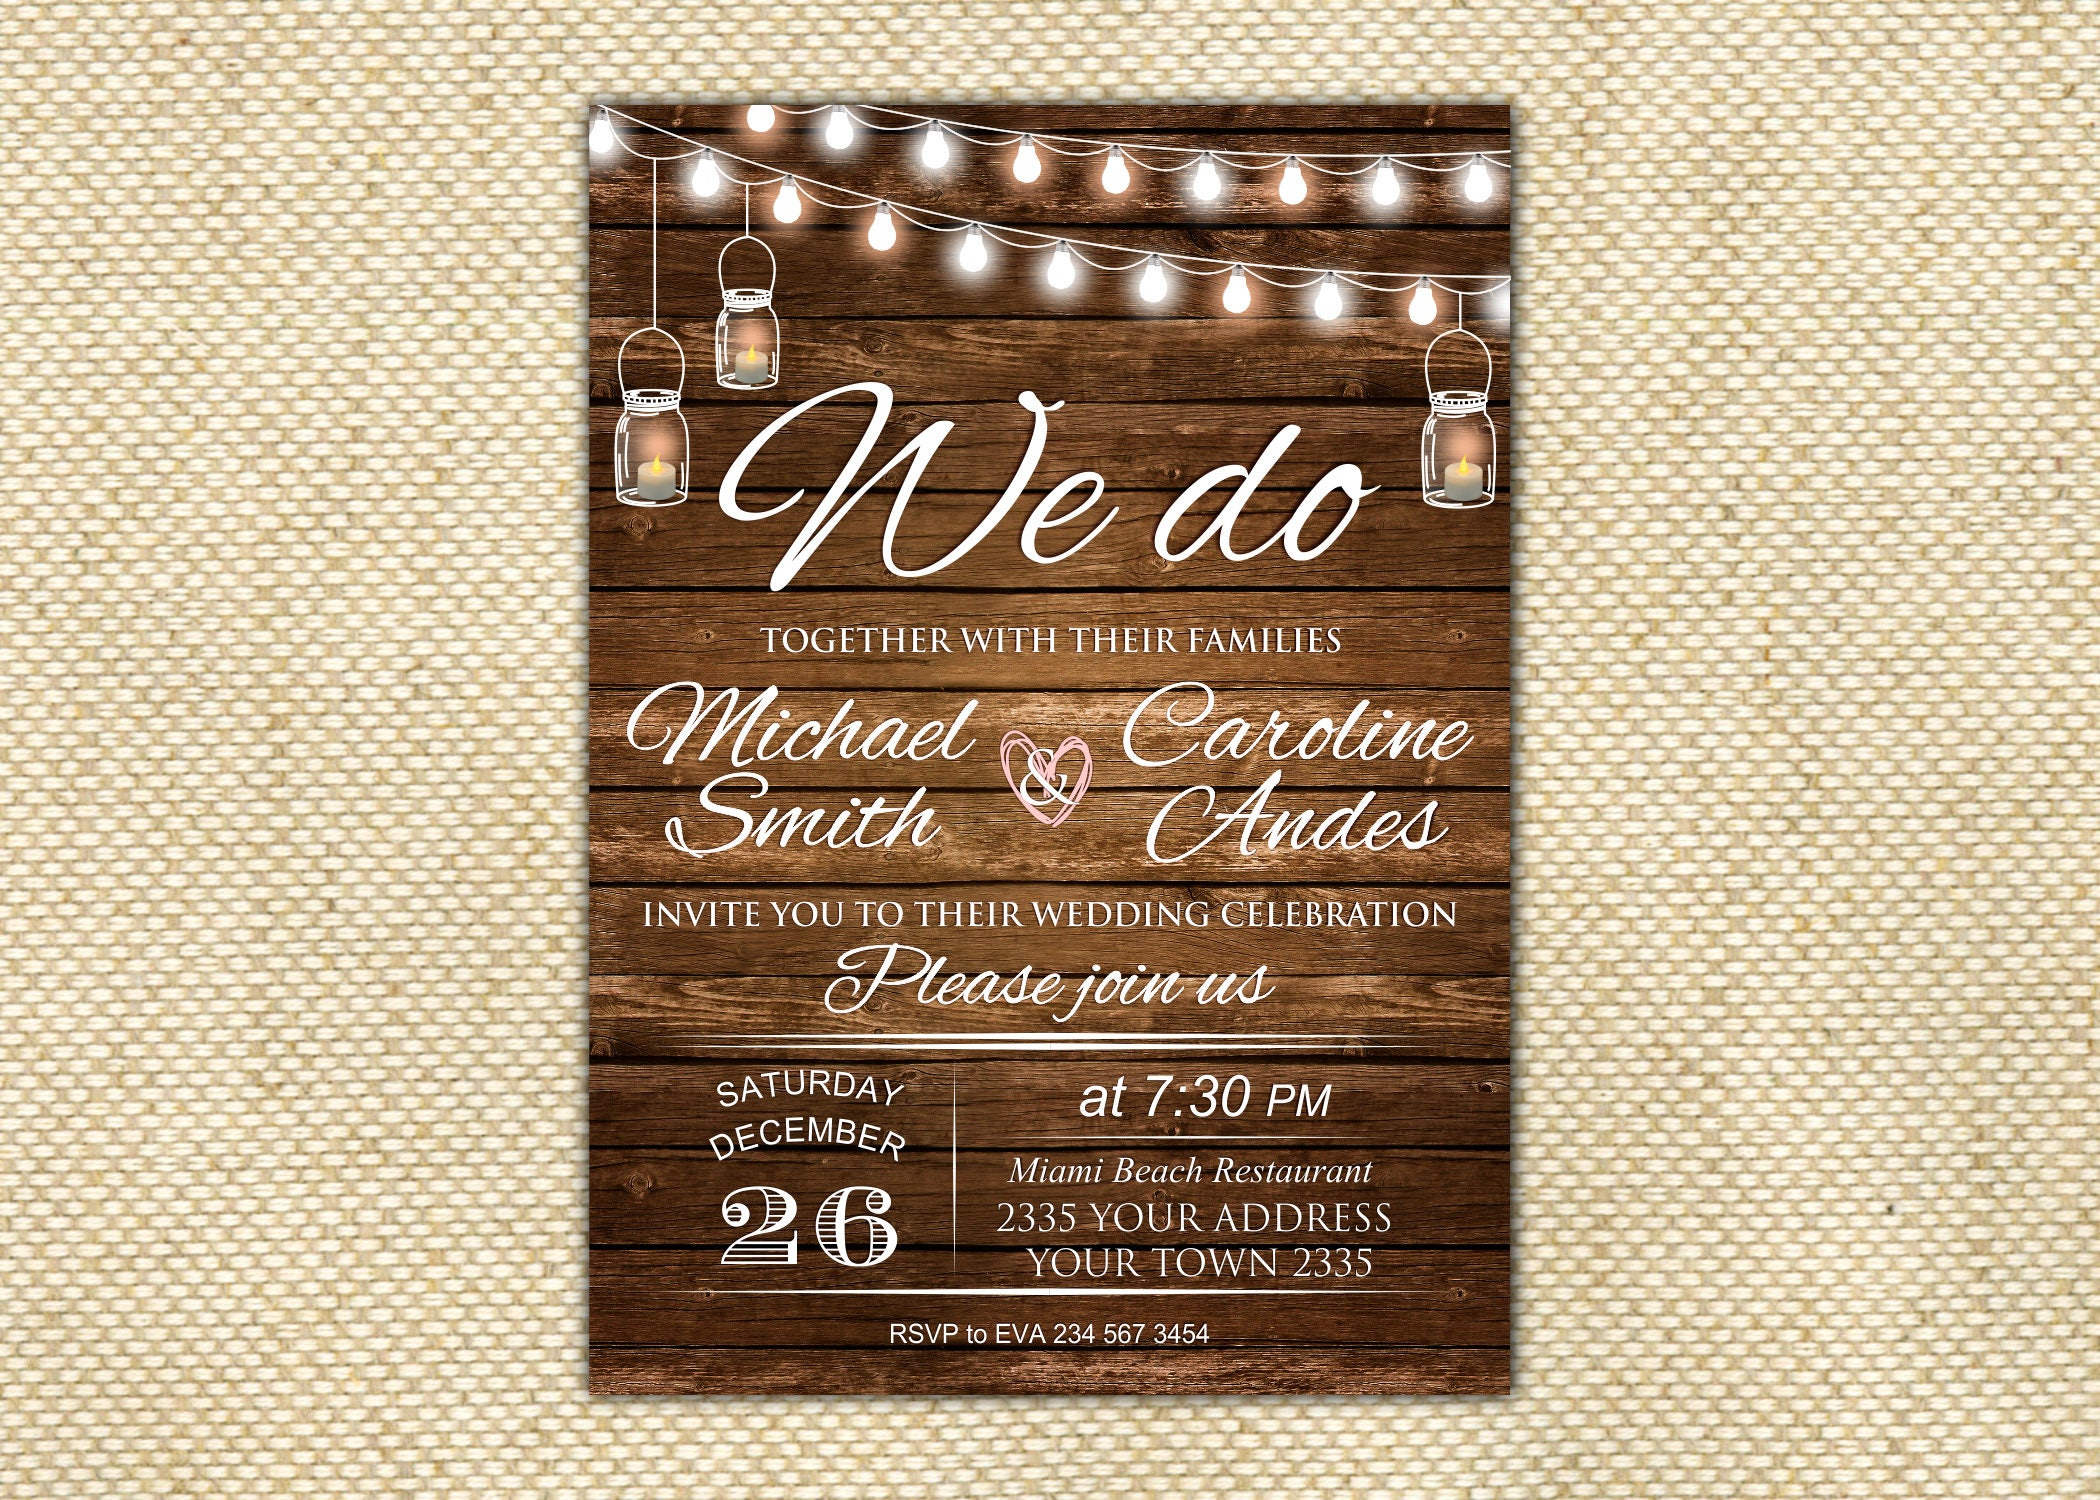 We do wedding invitation wedding anniversary invitations we still we do wedding invitation wedding anniversary invitations we still do invite rustic string stopboris Images